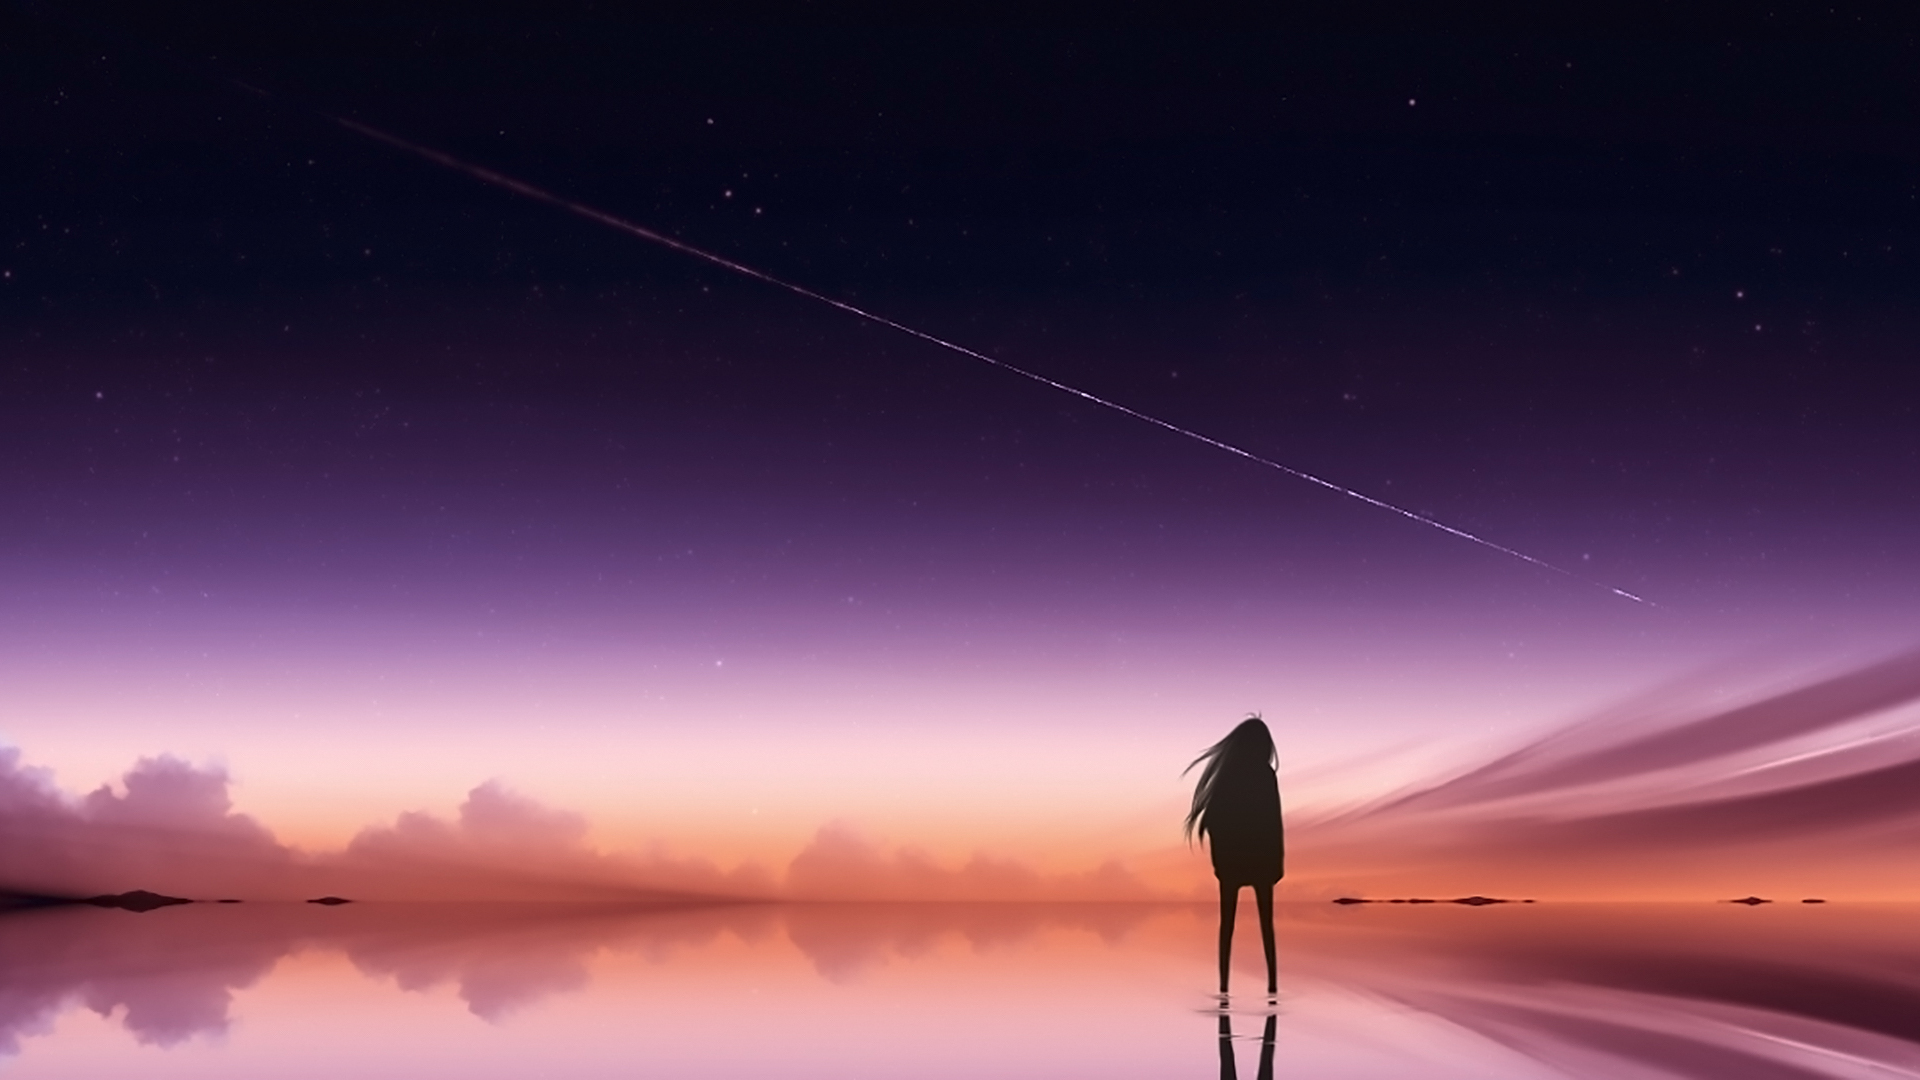 1920x1080 Anime Pink Sky Standing Alone Laptop Full Hd 1080p